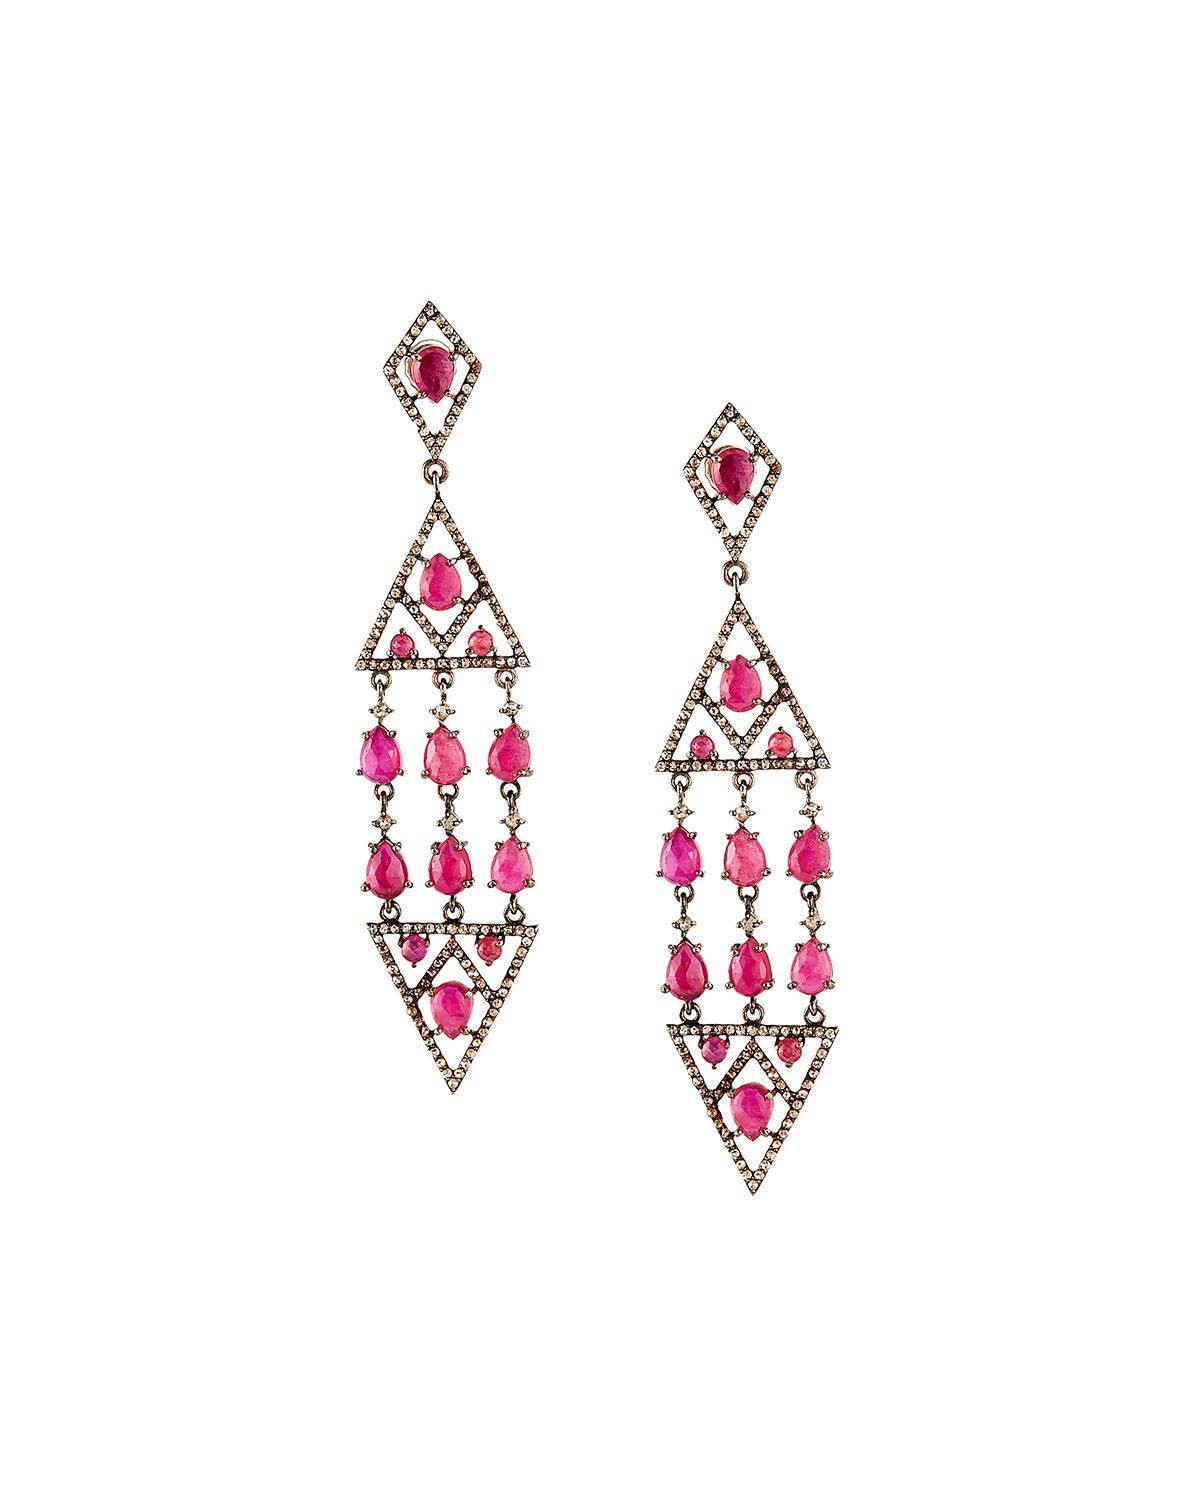 Red Diamond Chandelier Earrings: Bavna Composite Ruby & Diamond Chandelier Earrings